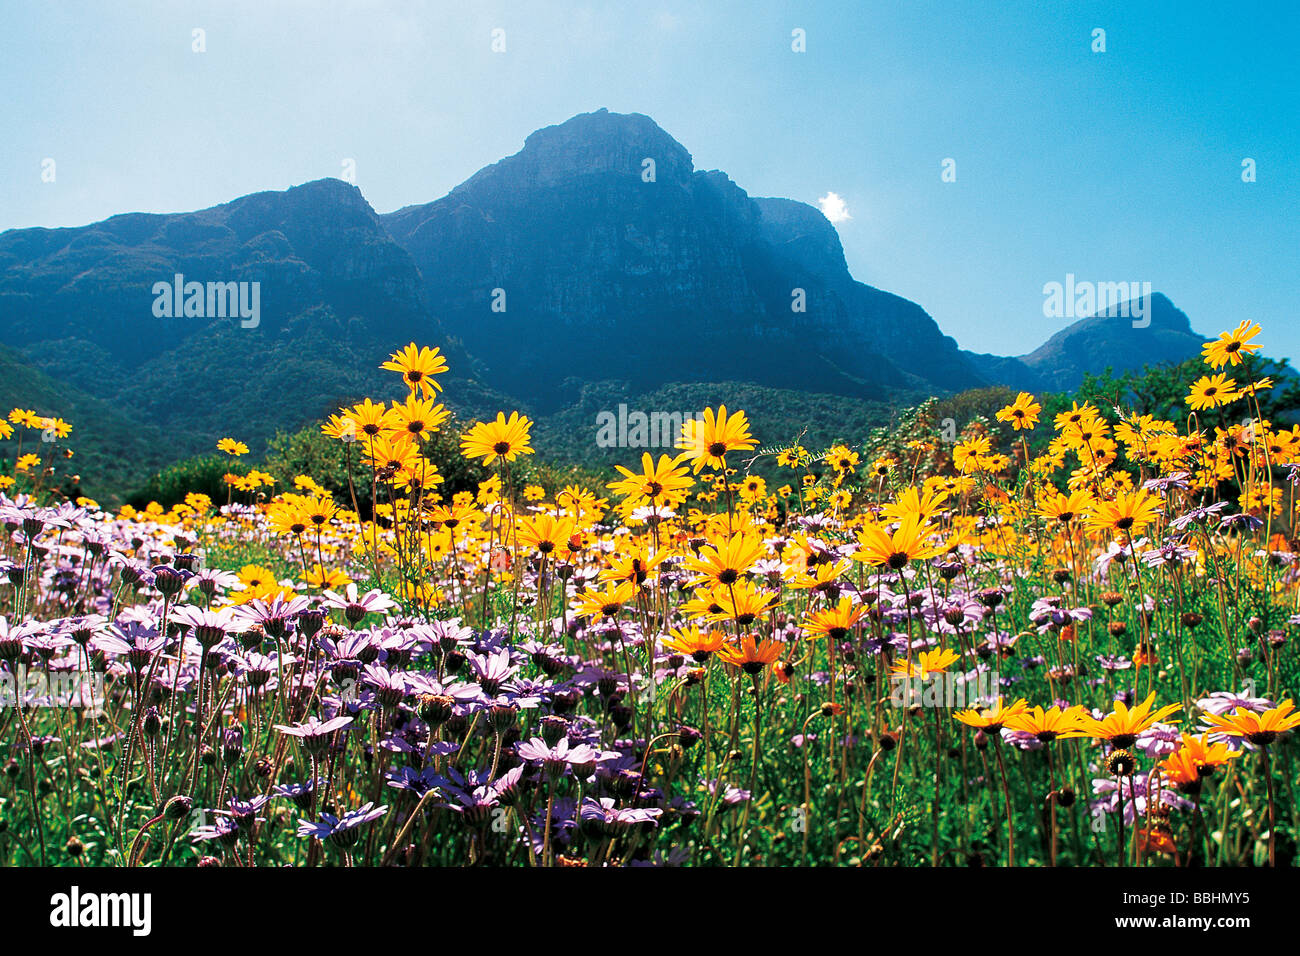 AFTER THE WINTER RAINS HAVE SOAKED THE EARTH A MIRACLE OF NATURE TRANSFORMS THE LANDSCAPE INTO A FLORAL WONDERLAND - Stock Image